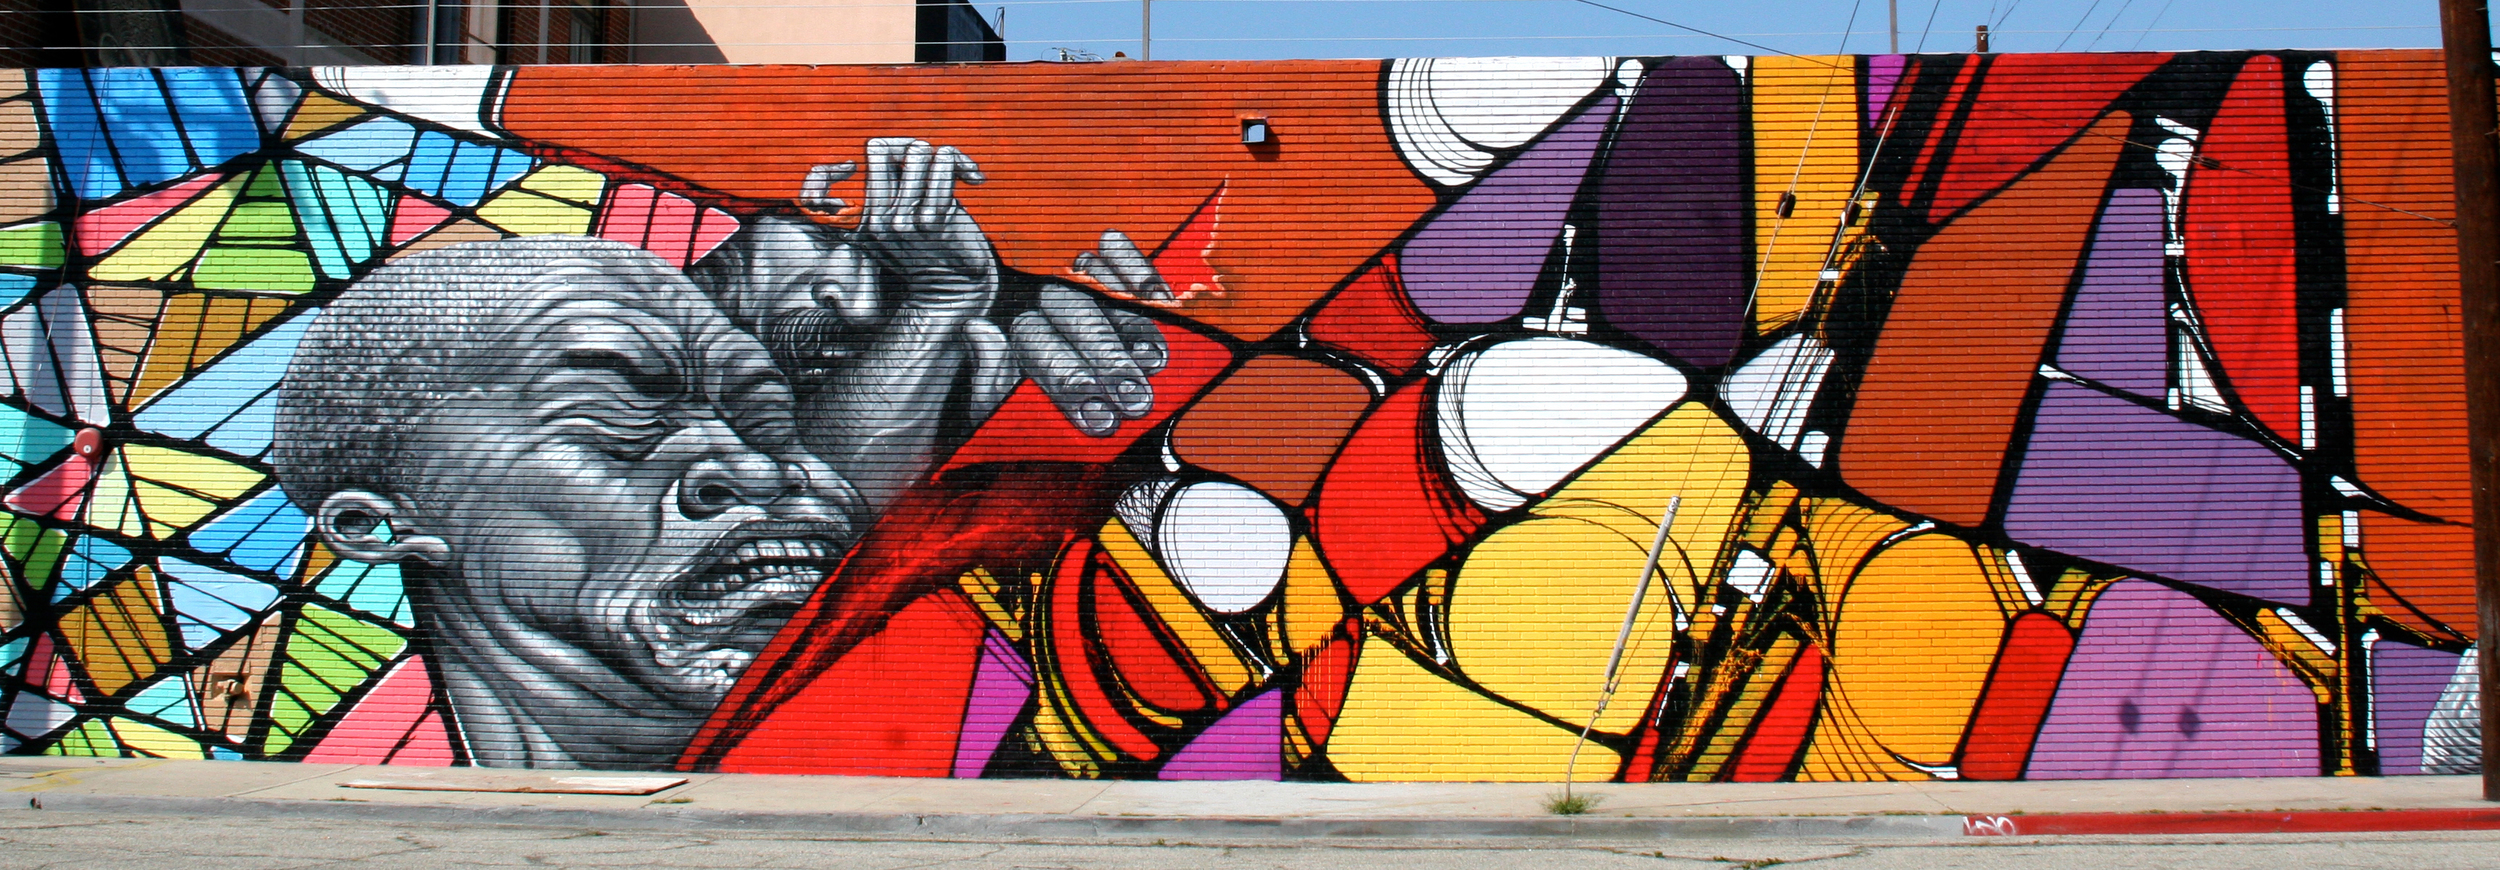 Christopher Brand, Evan Skrederstu, Steve Martinez & Zes.  Push (Abstract Warfare 2)  - LA Freewalls Project. 2011